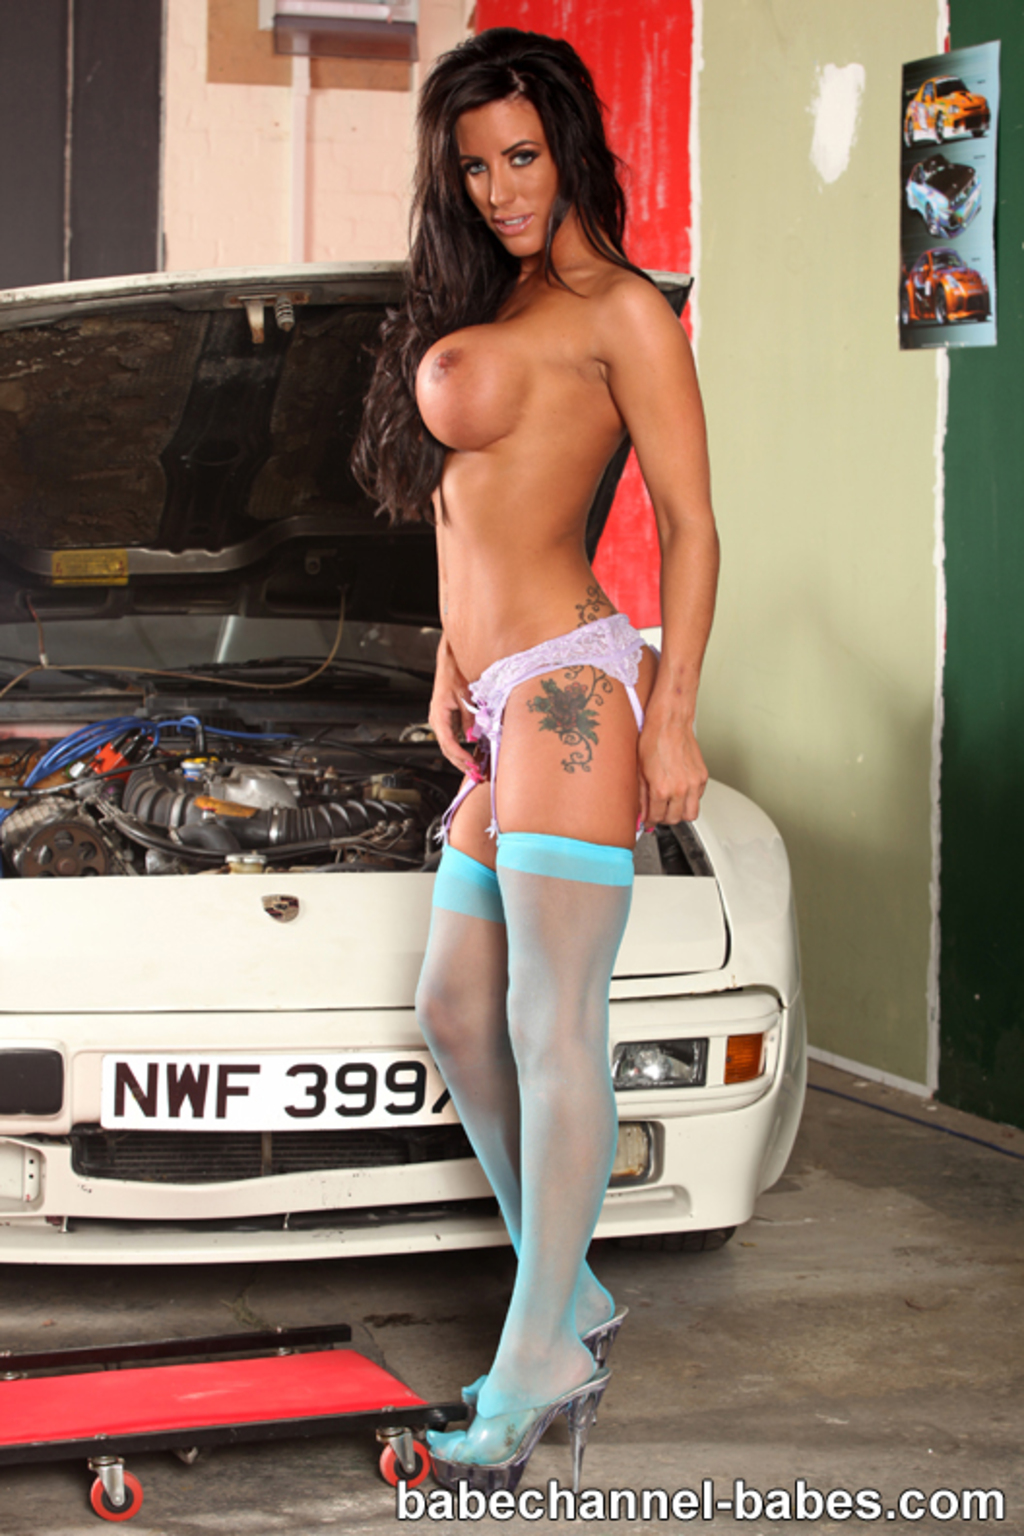 Charlie Monaco Sexy Blue Stockings - babechannel-babes 10 ...